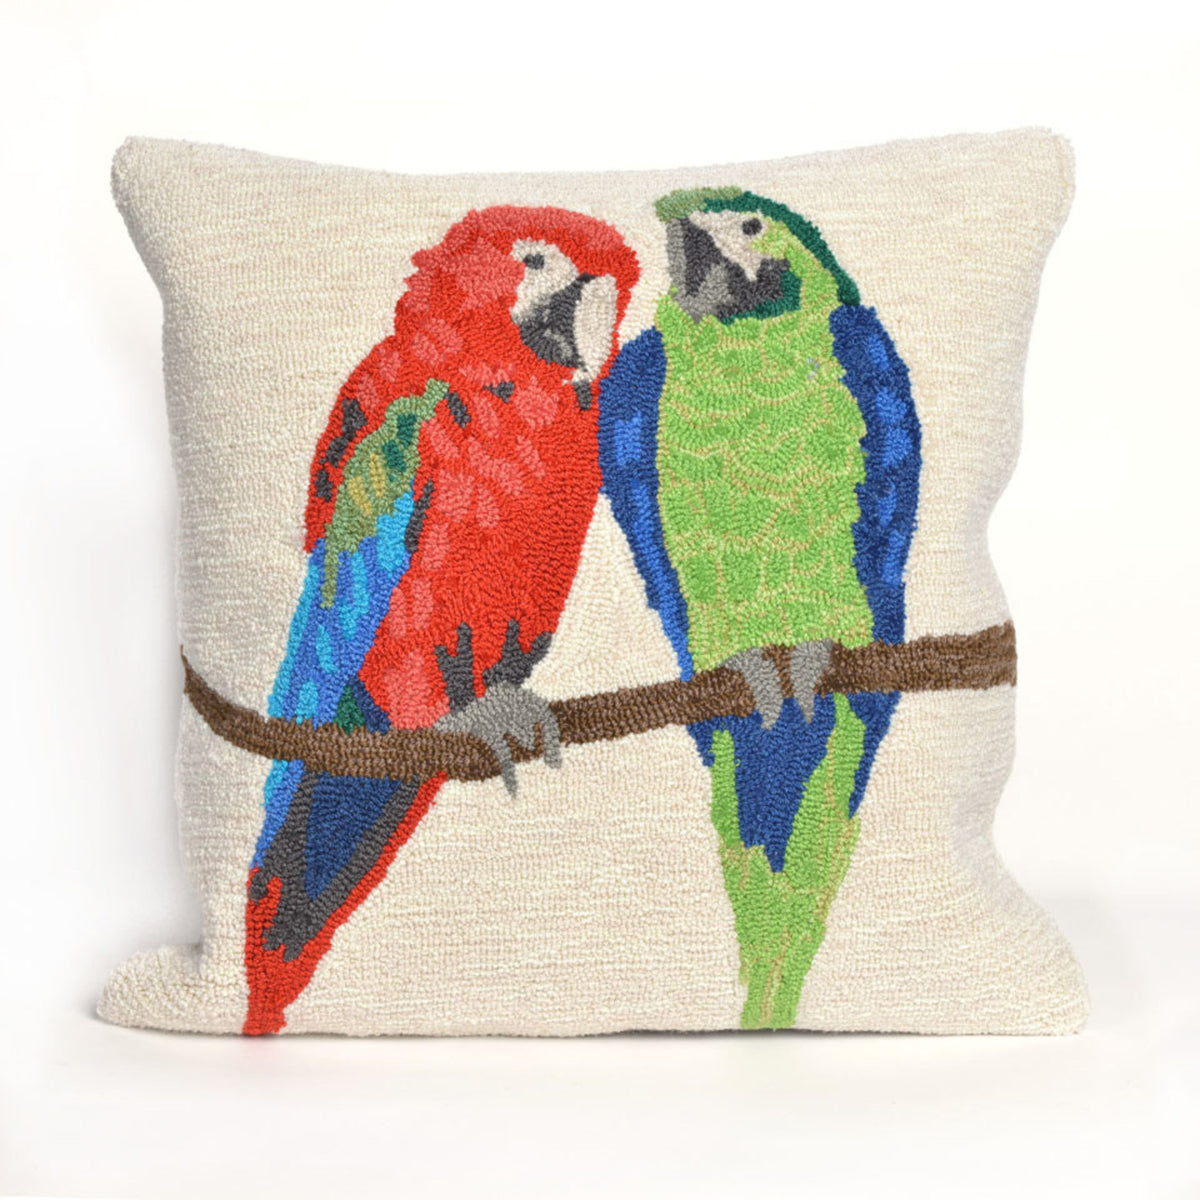 Frontporch Parrots White Pillows